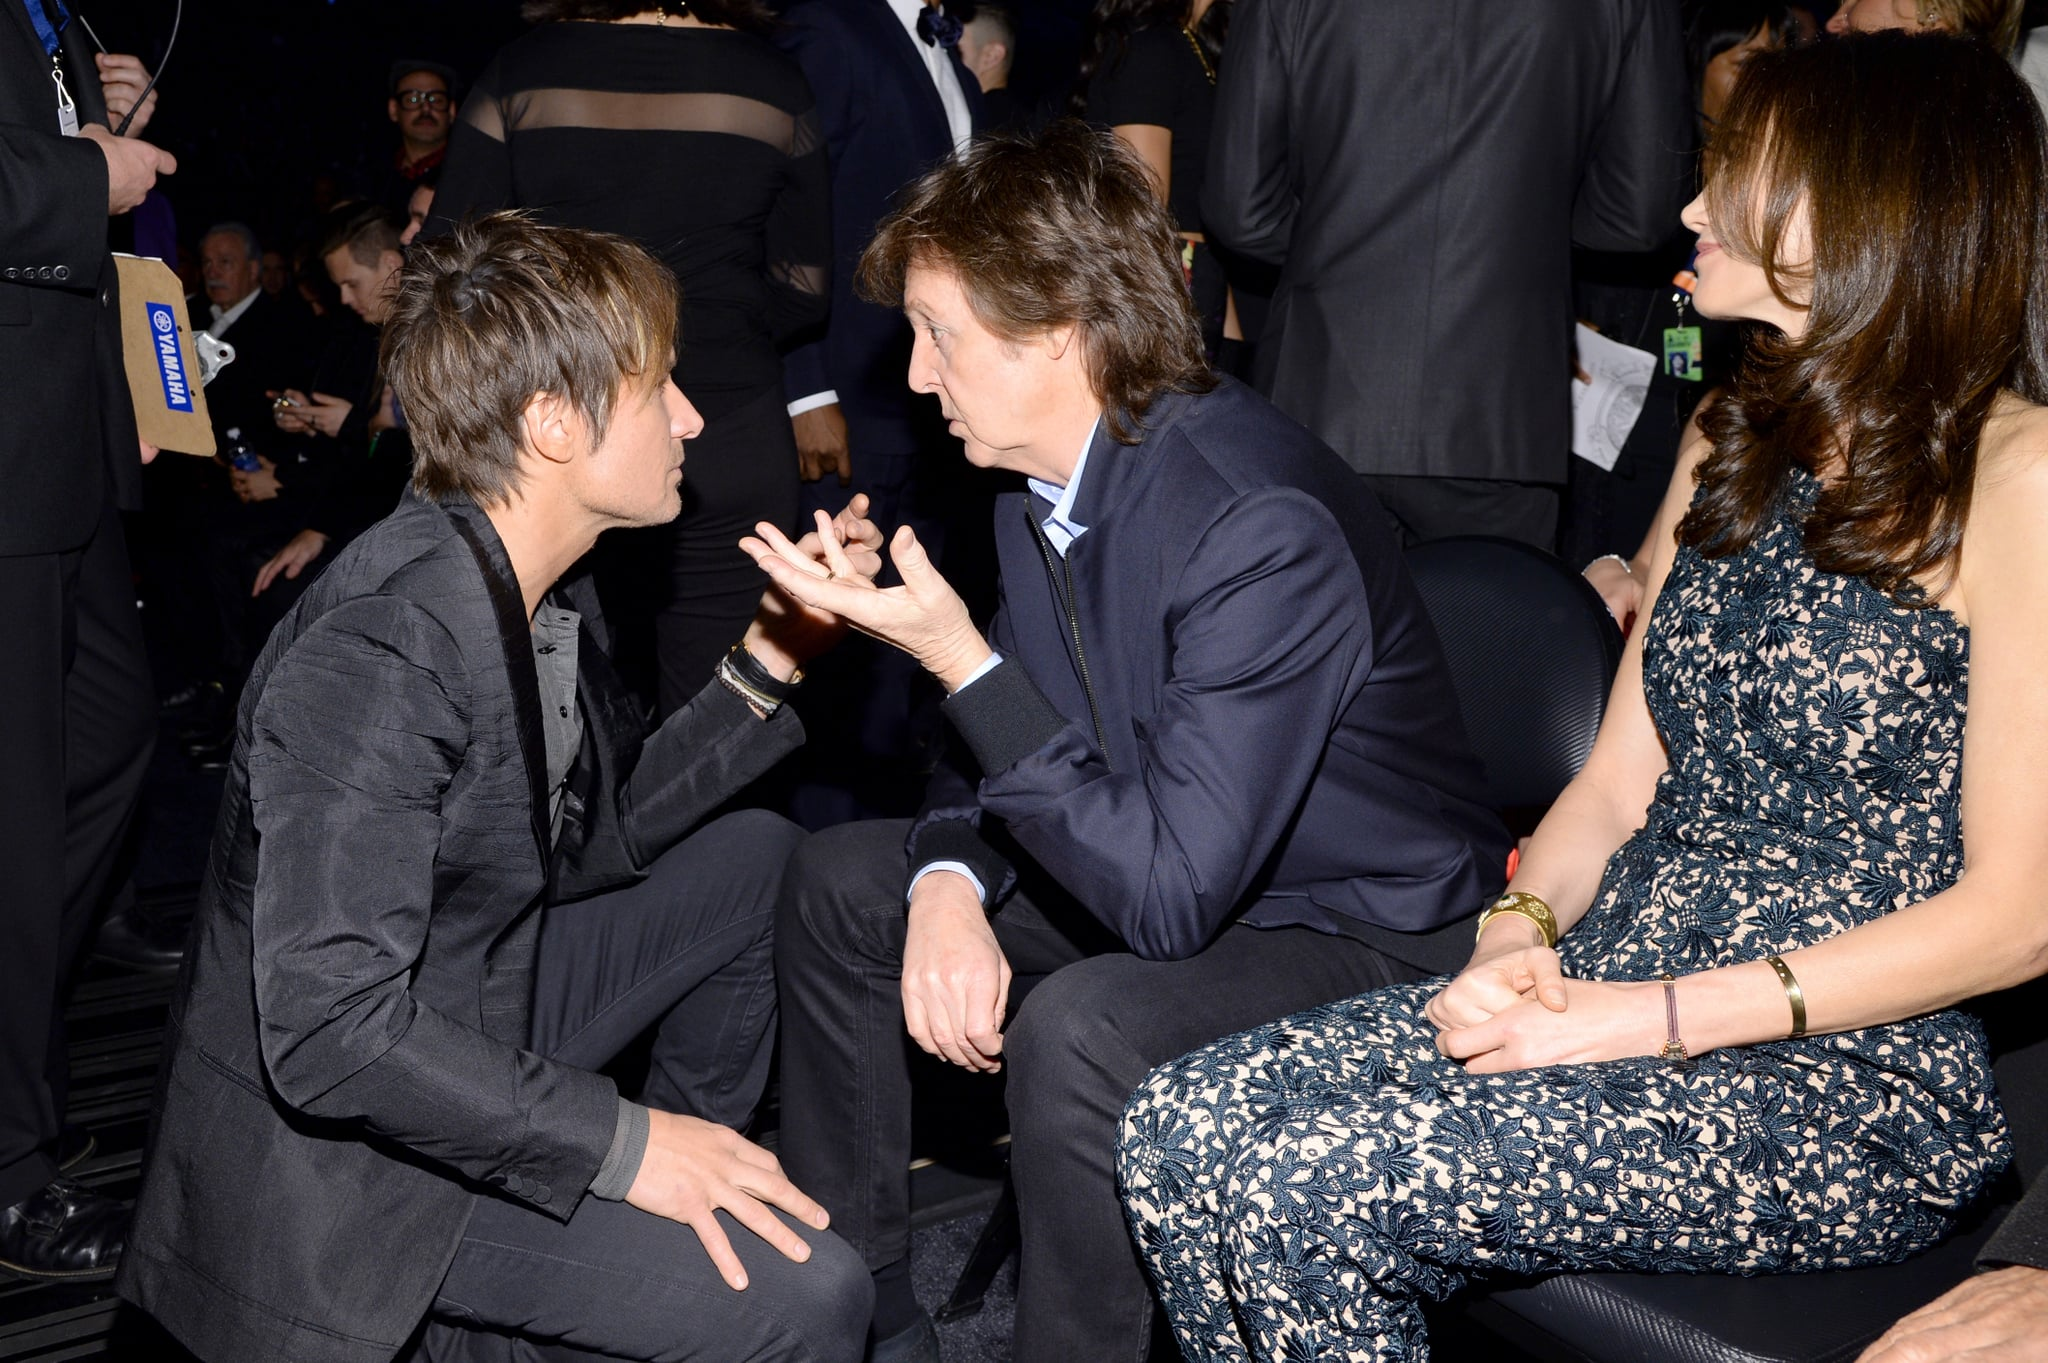 Keith Urban chatted with Paul McCartney.